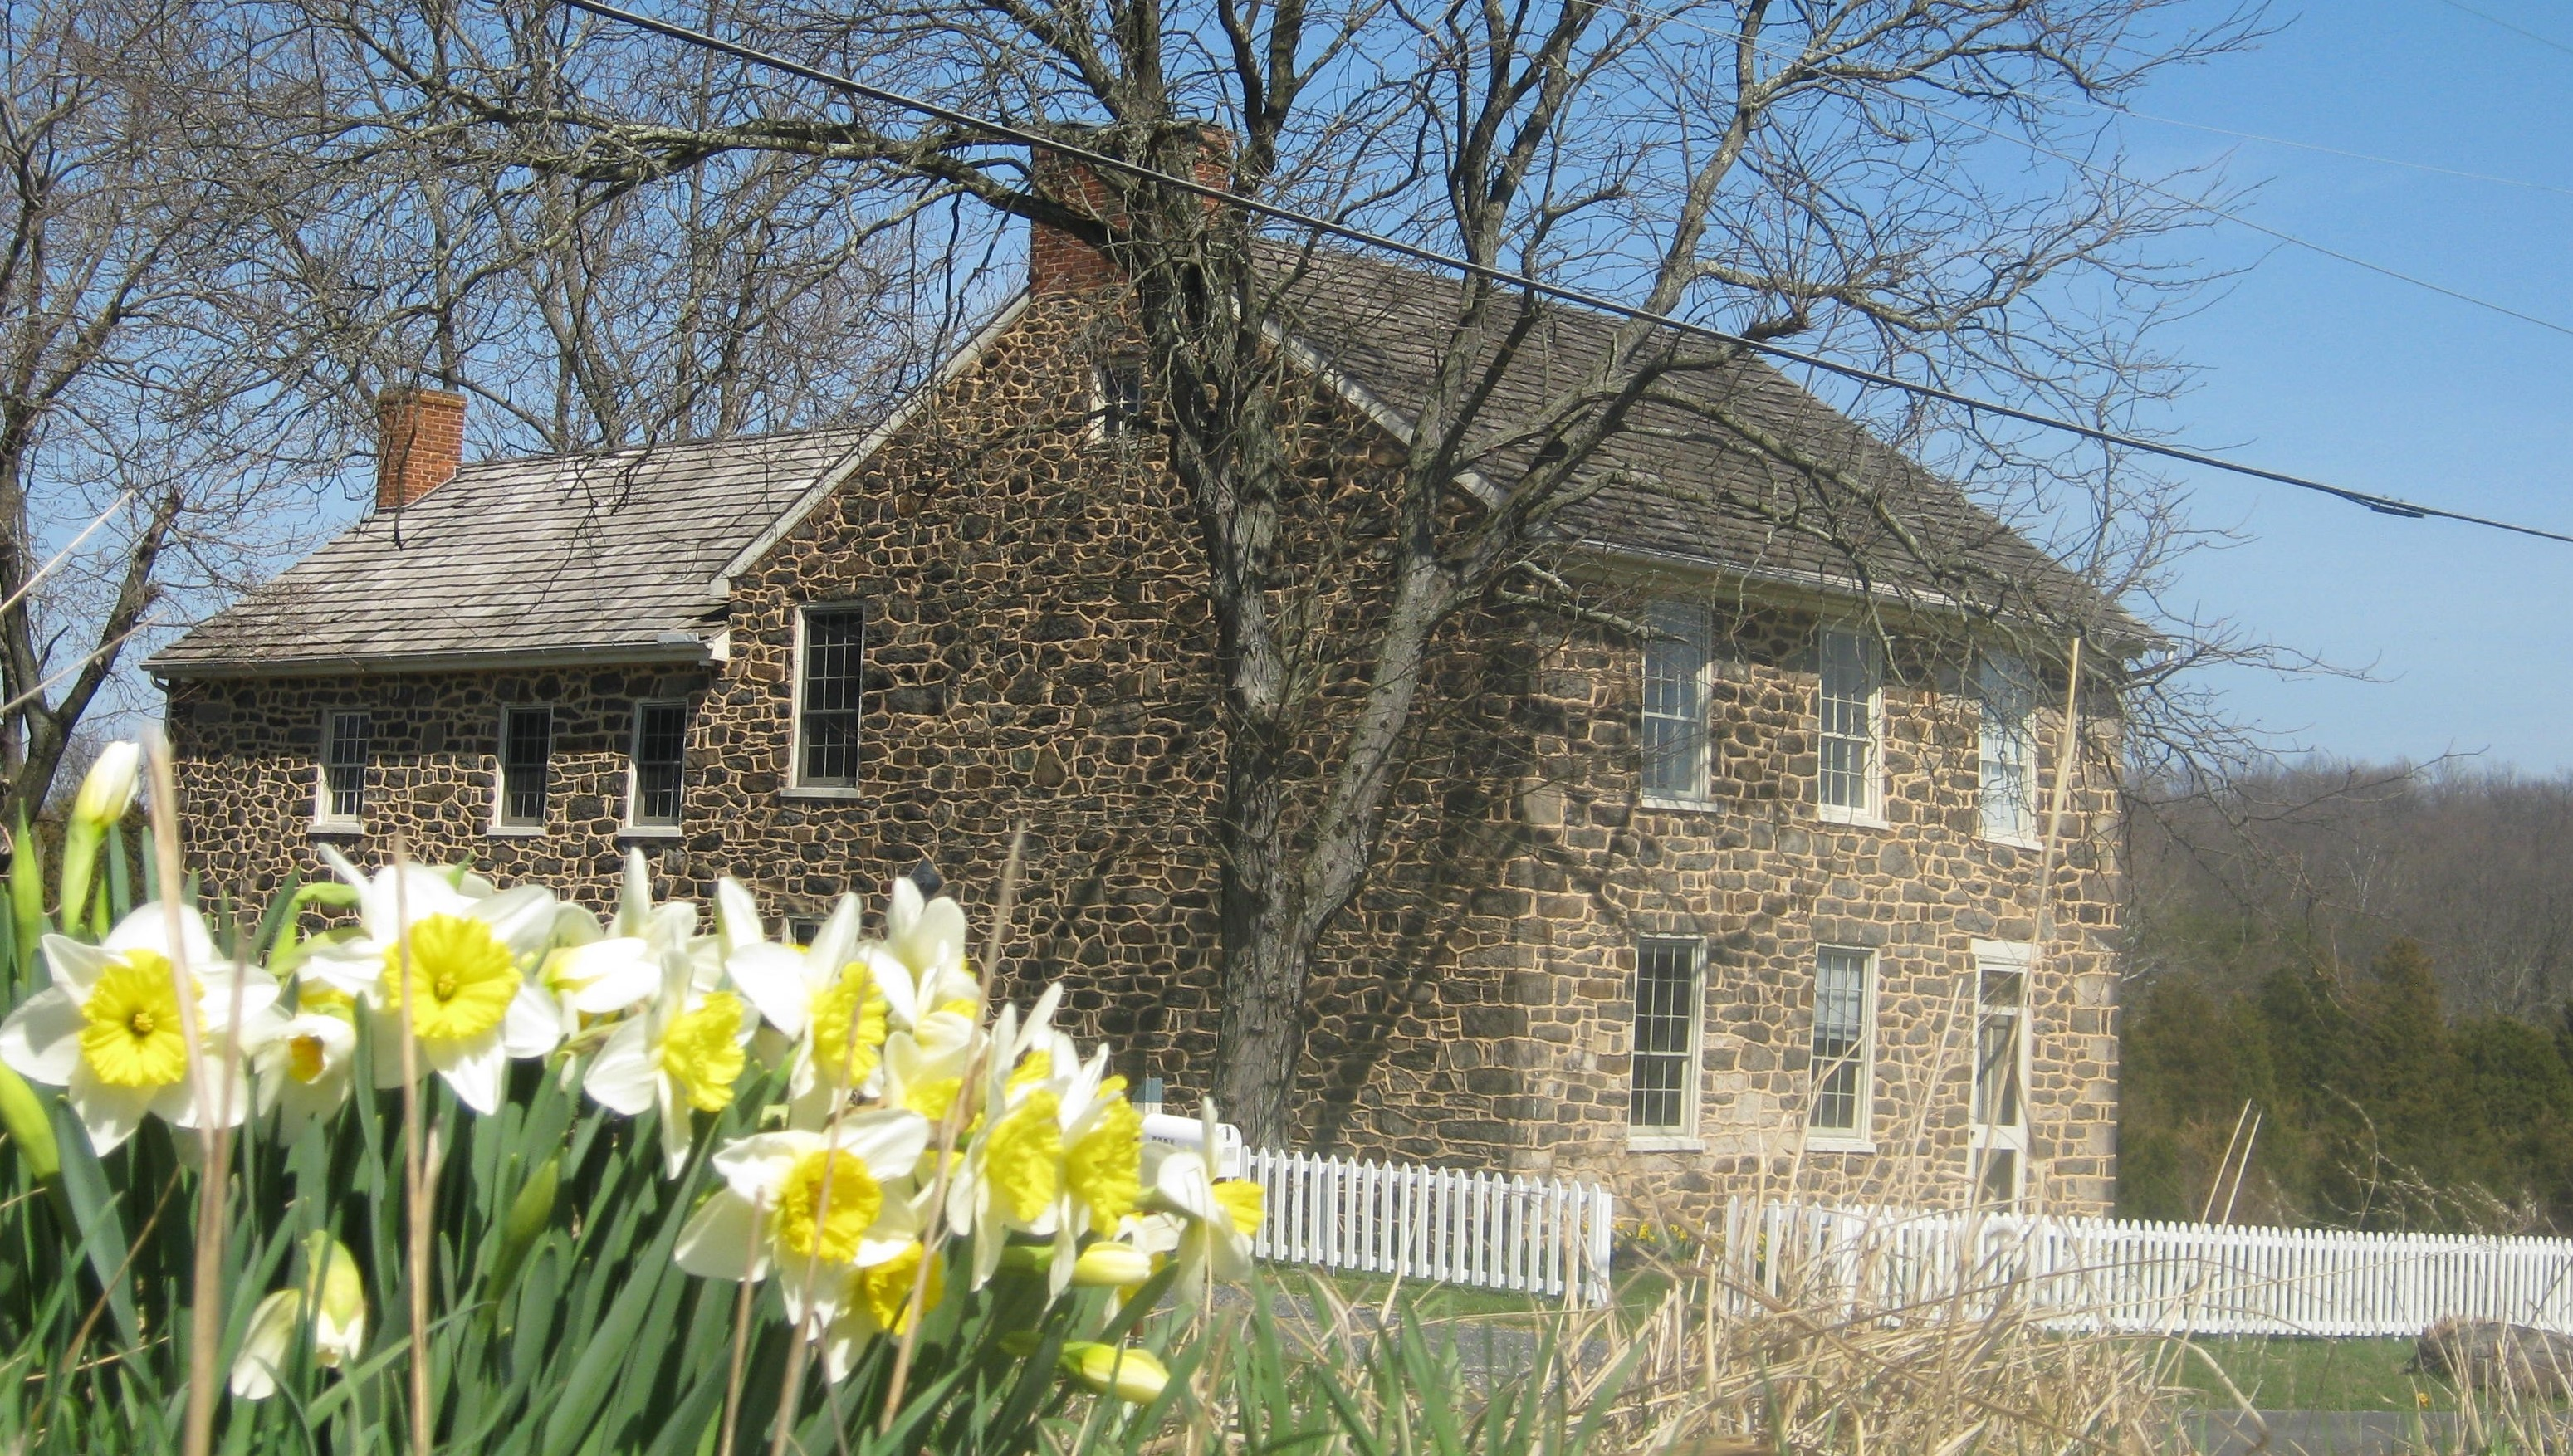 The Historic Daniel Lady Farm